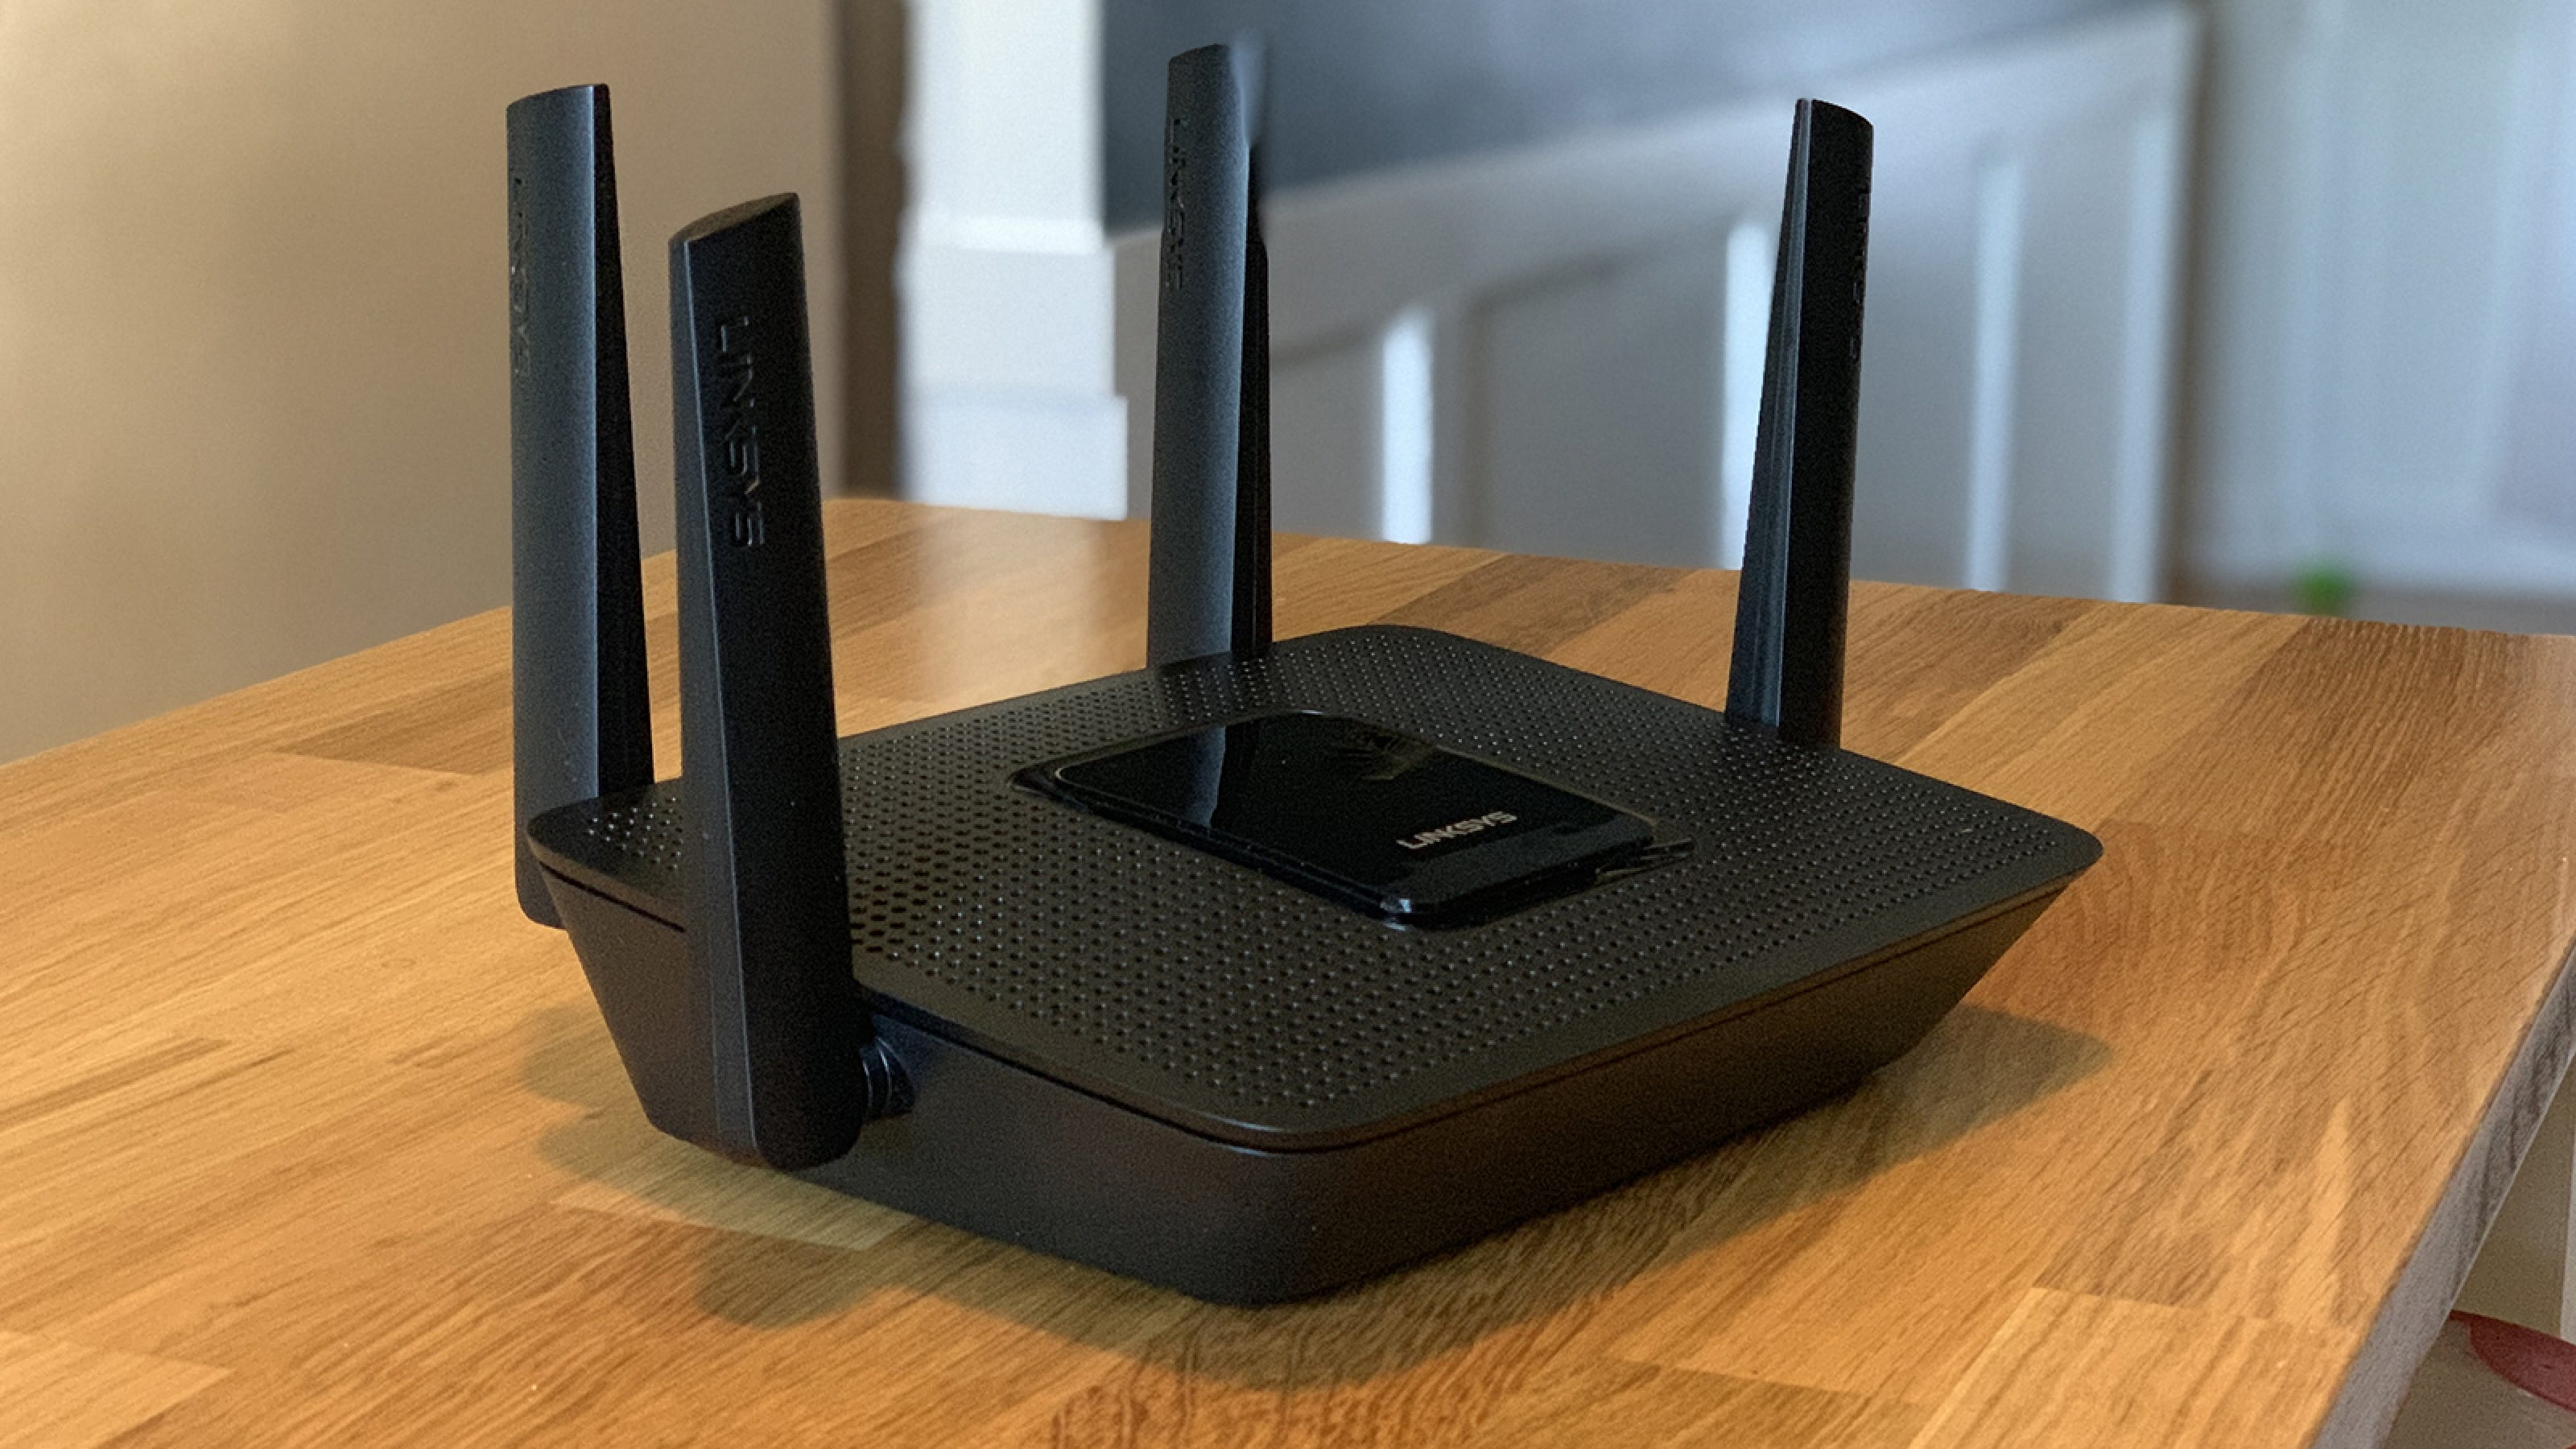 Linksys MR8300 Router Review: Mesh Wi-Fi for Advanced Users – Review